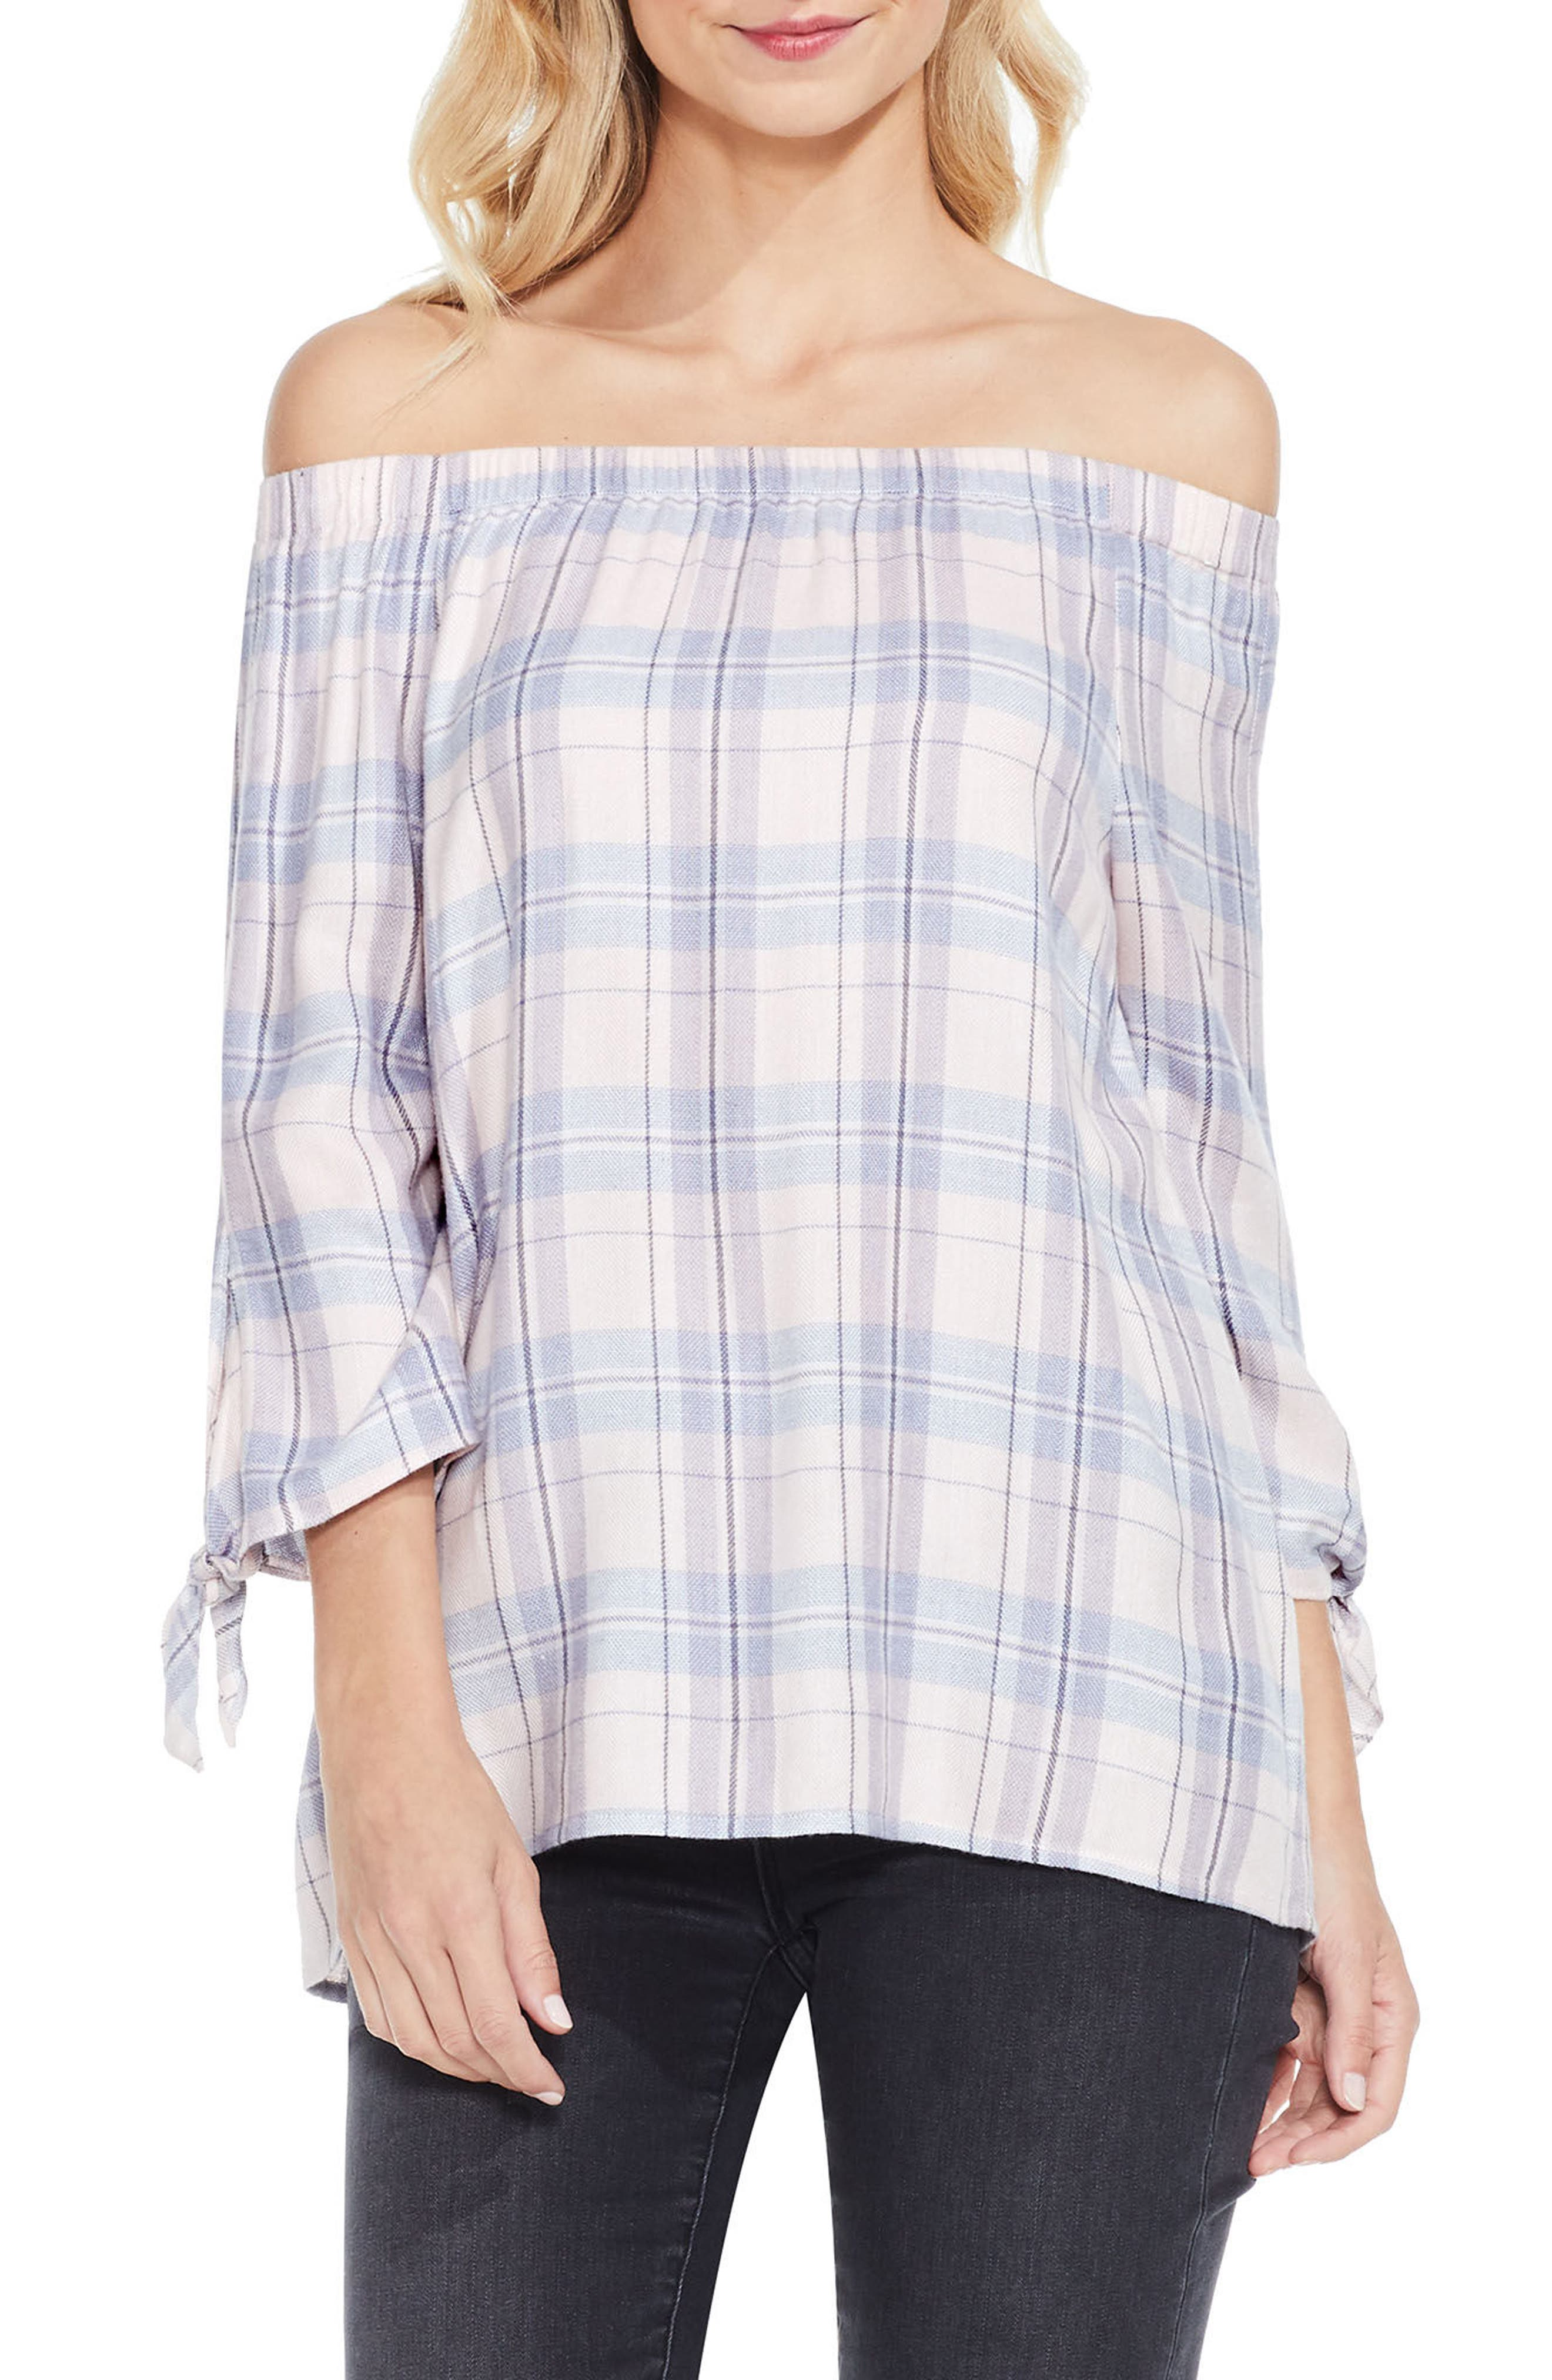 Main Image - Two by Vince Camuto Off the Shoulder Plaid Top